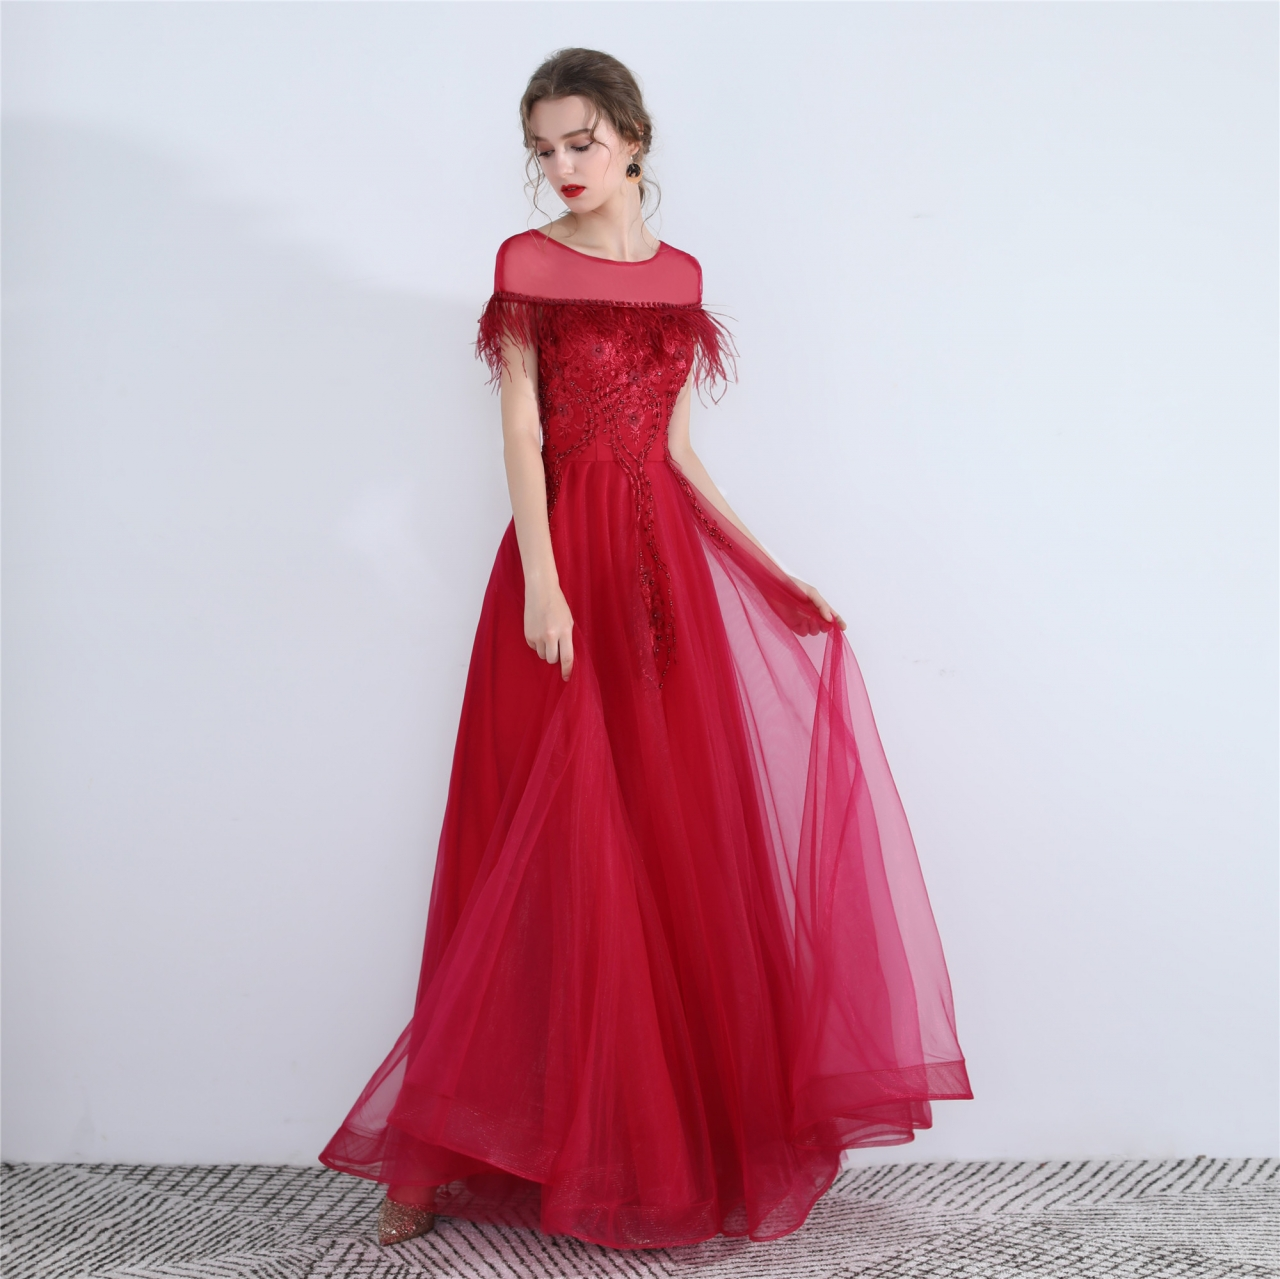 Red Maxi Wedding Dress Dacc